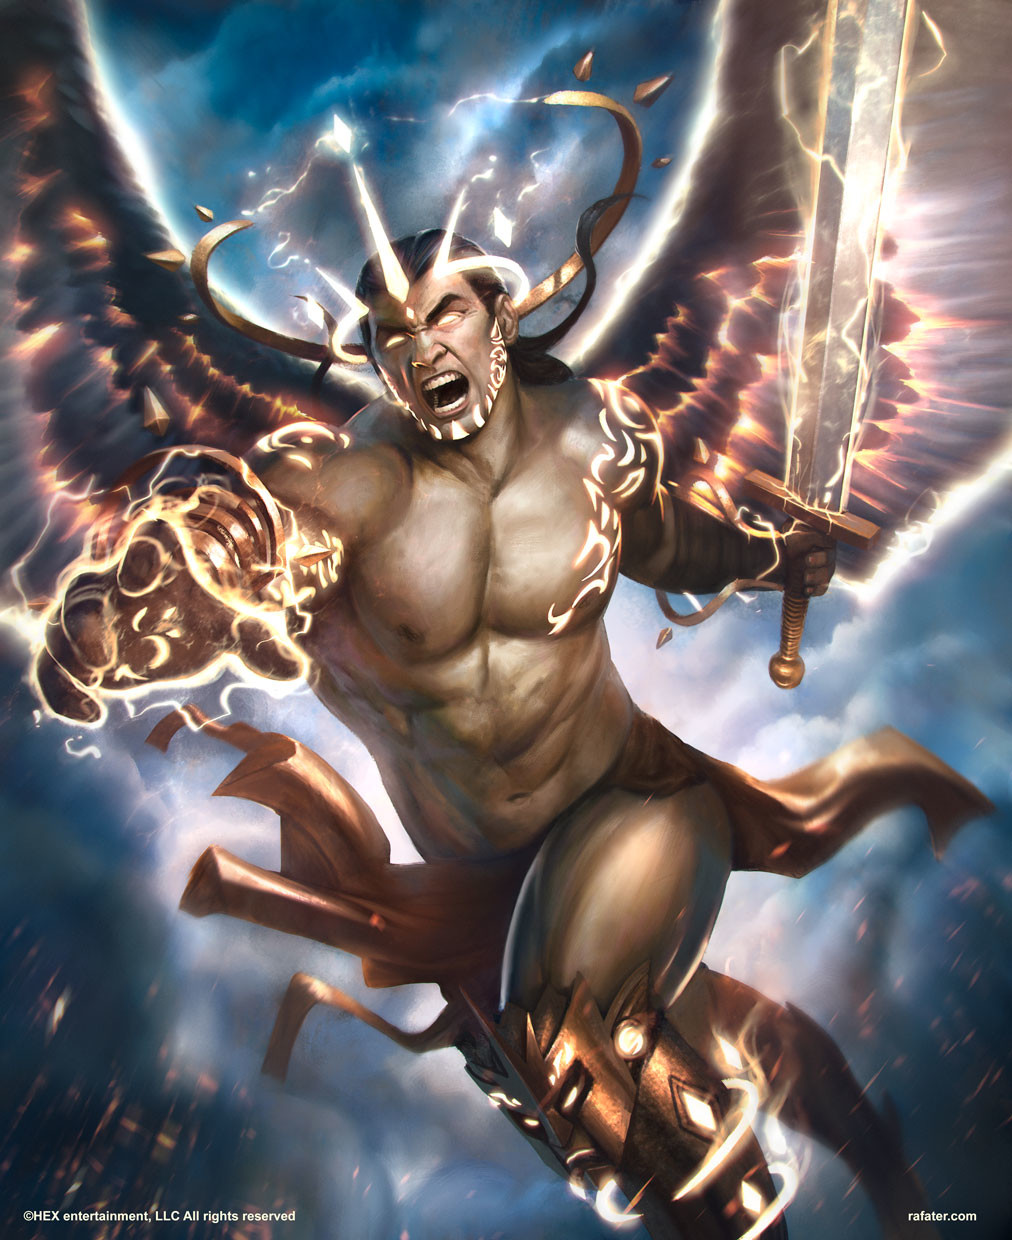 Rafael teruel hex tcg 01 angel of glory by rafater